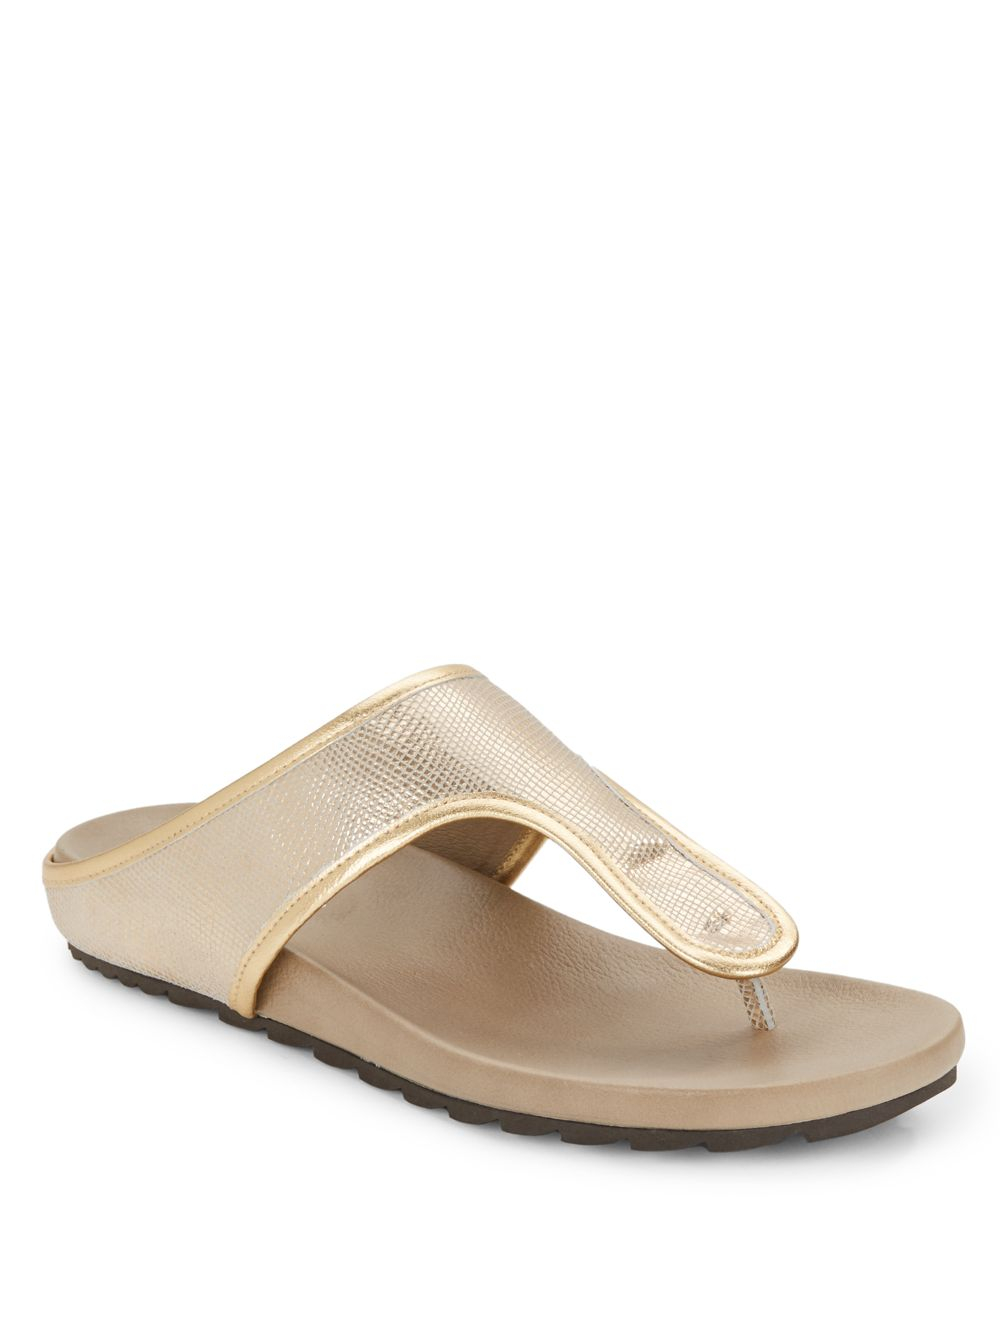 Donald J Pliner Embellished Thong Sandals